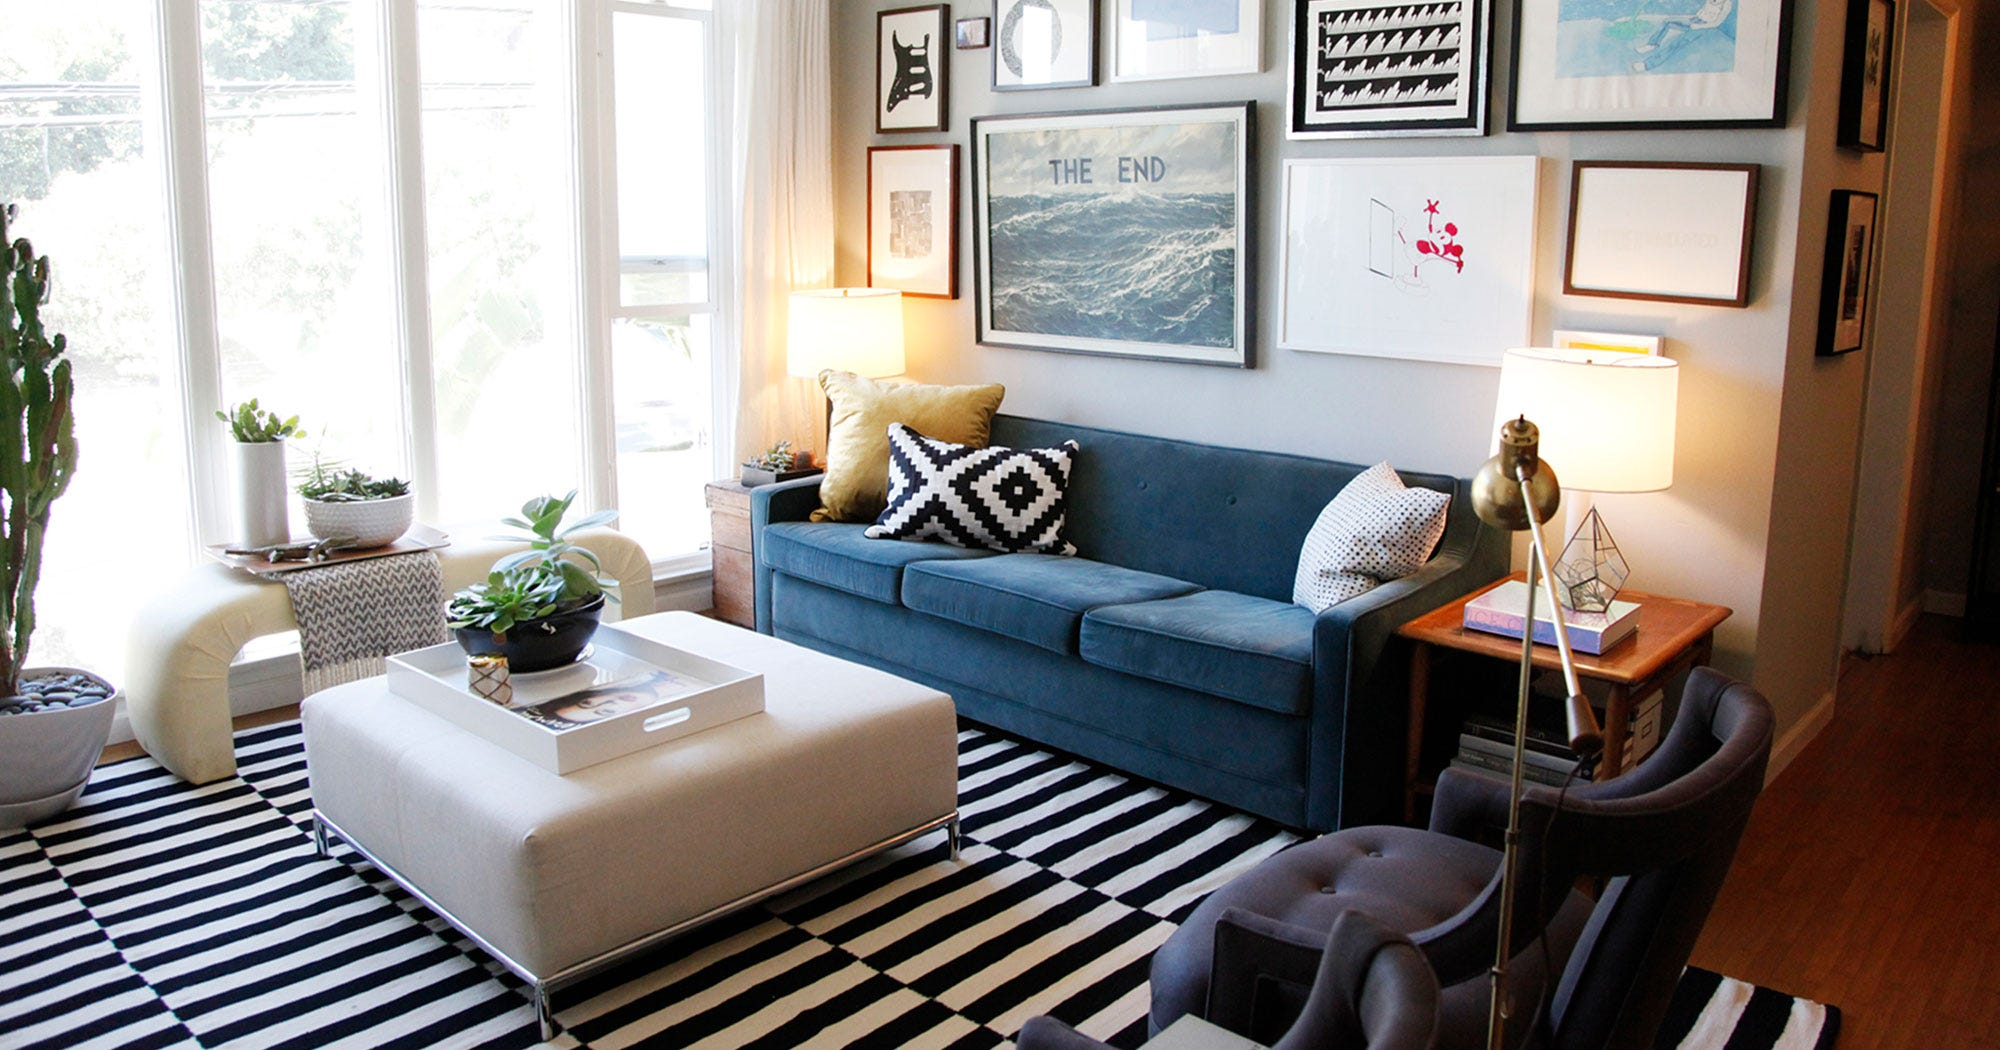 Why Are Por Fashion Brands Selling Home Decor Now? Rachel Zoe House Interior Design on dina manzo house interior design, kris jenner house interior design, designer house interior design,